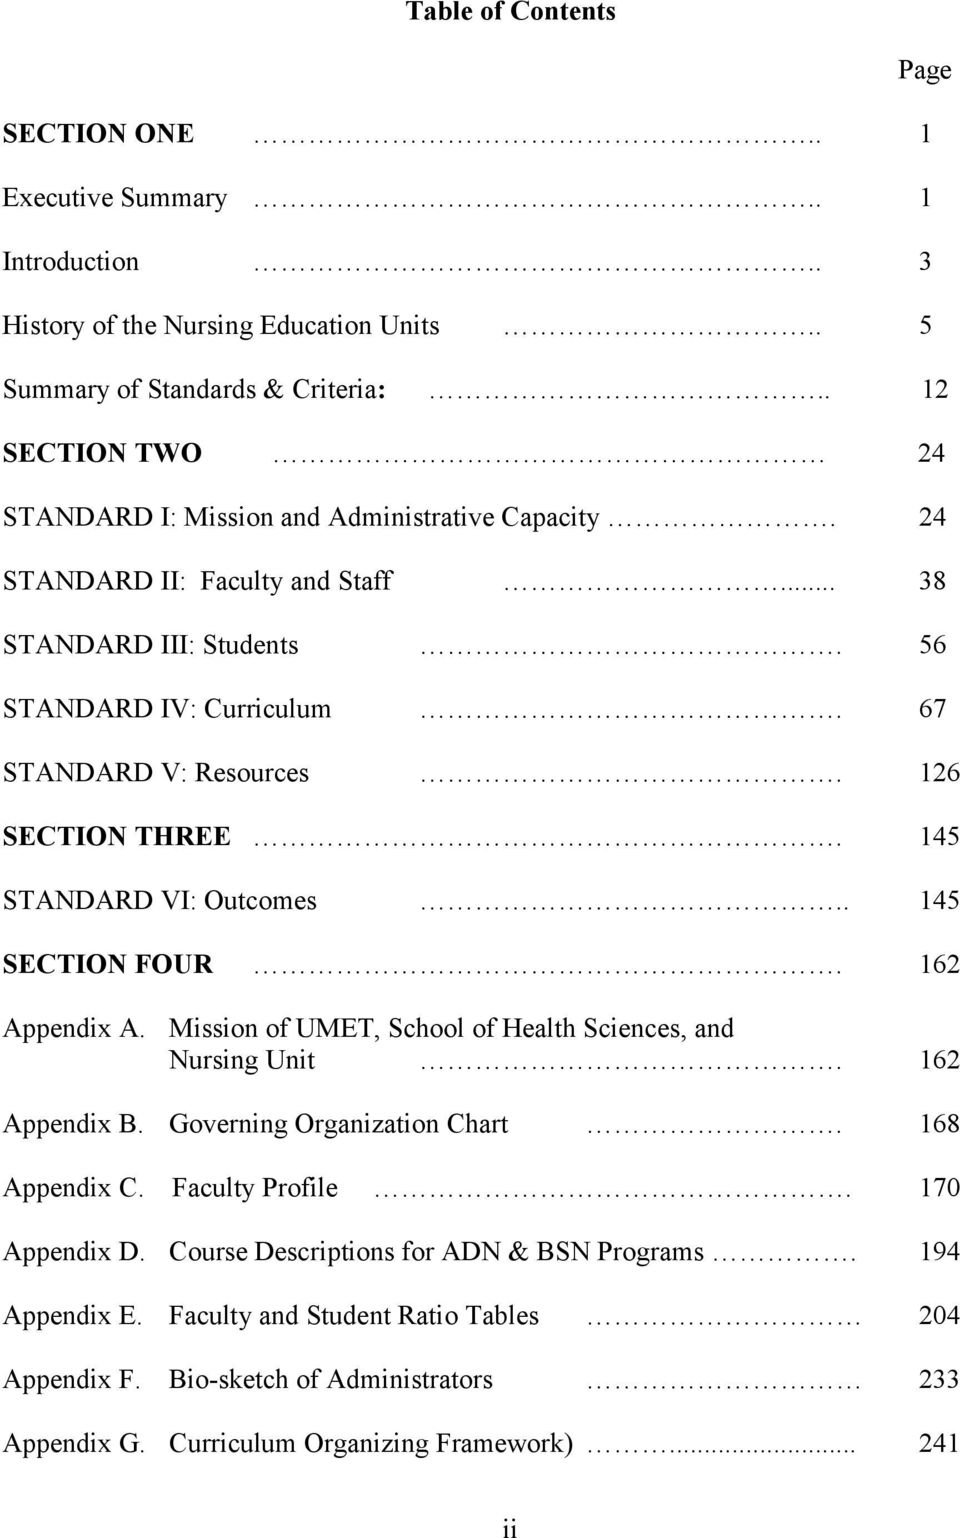 126 SECTION THREE. 145 STANDARD VI: Outcomes.. 145 SECTION FOUR. 162 Appendix A. Mission of UMET, School of Health Sciences, and Nursing Unit. 162 Appendix B. Governing Organization Chart.